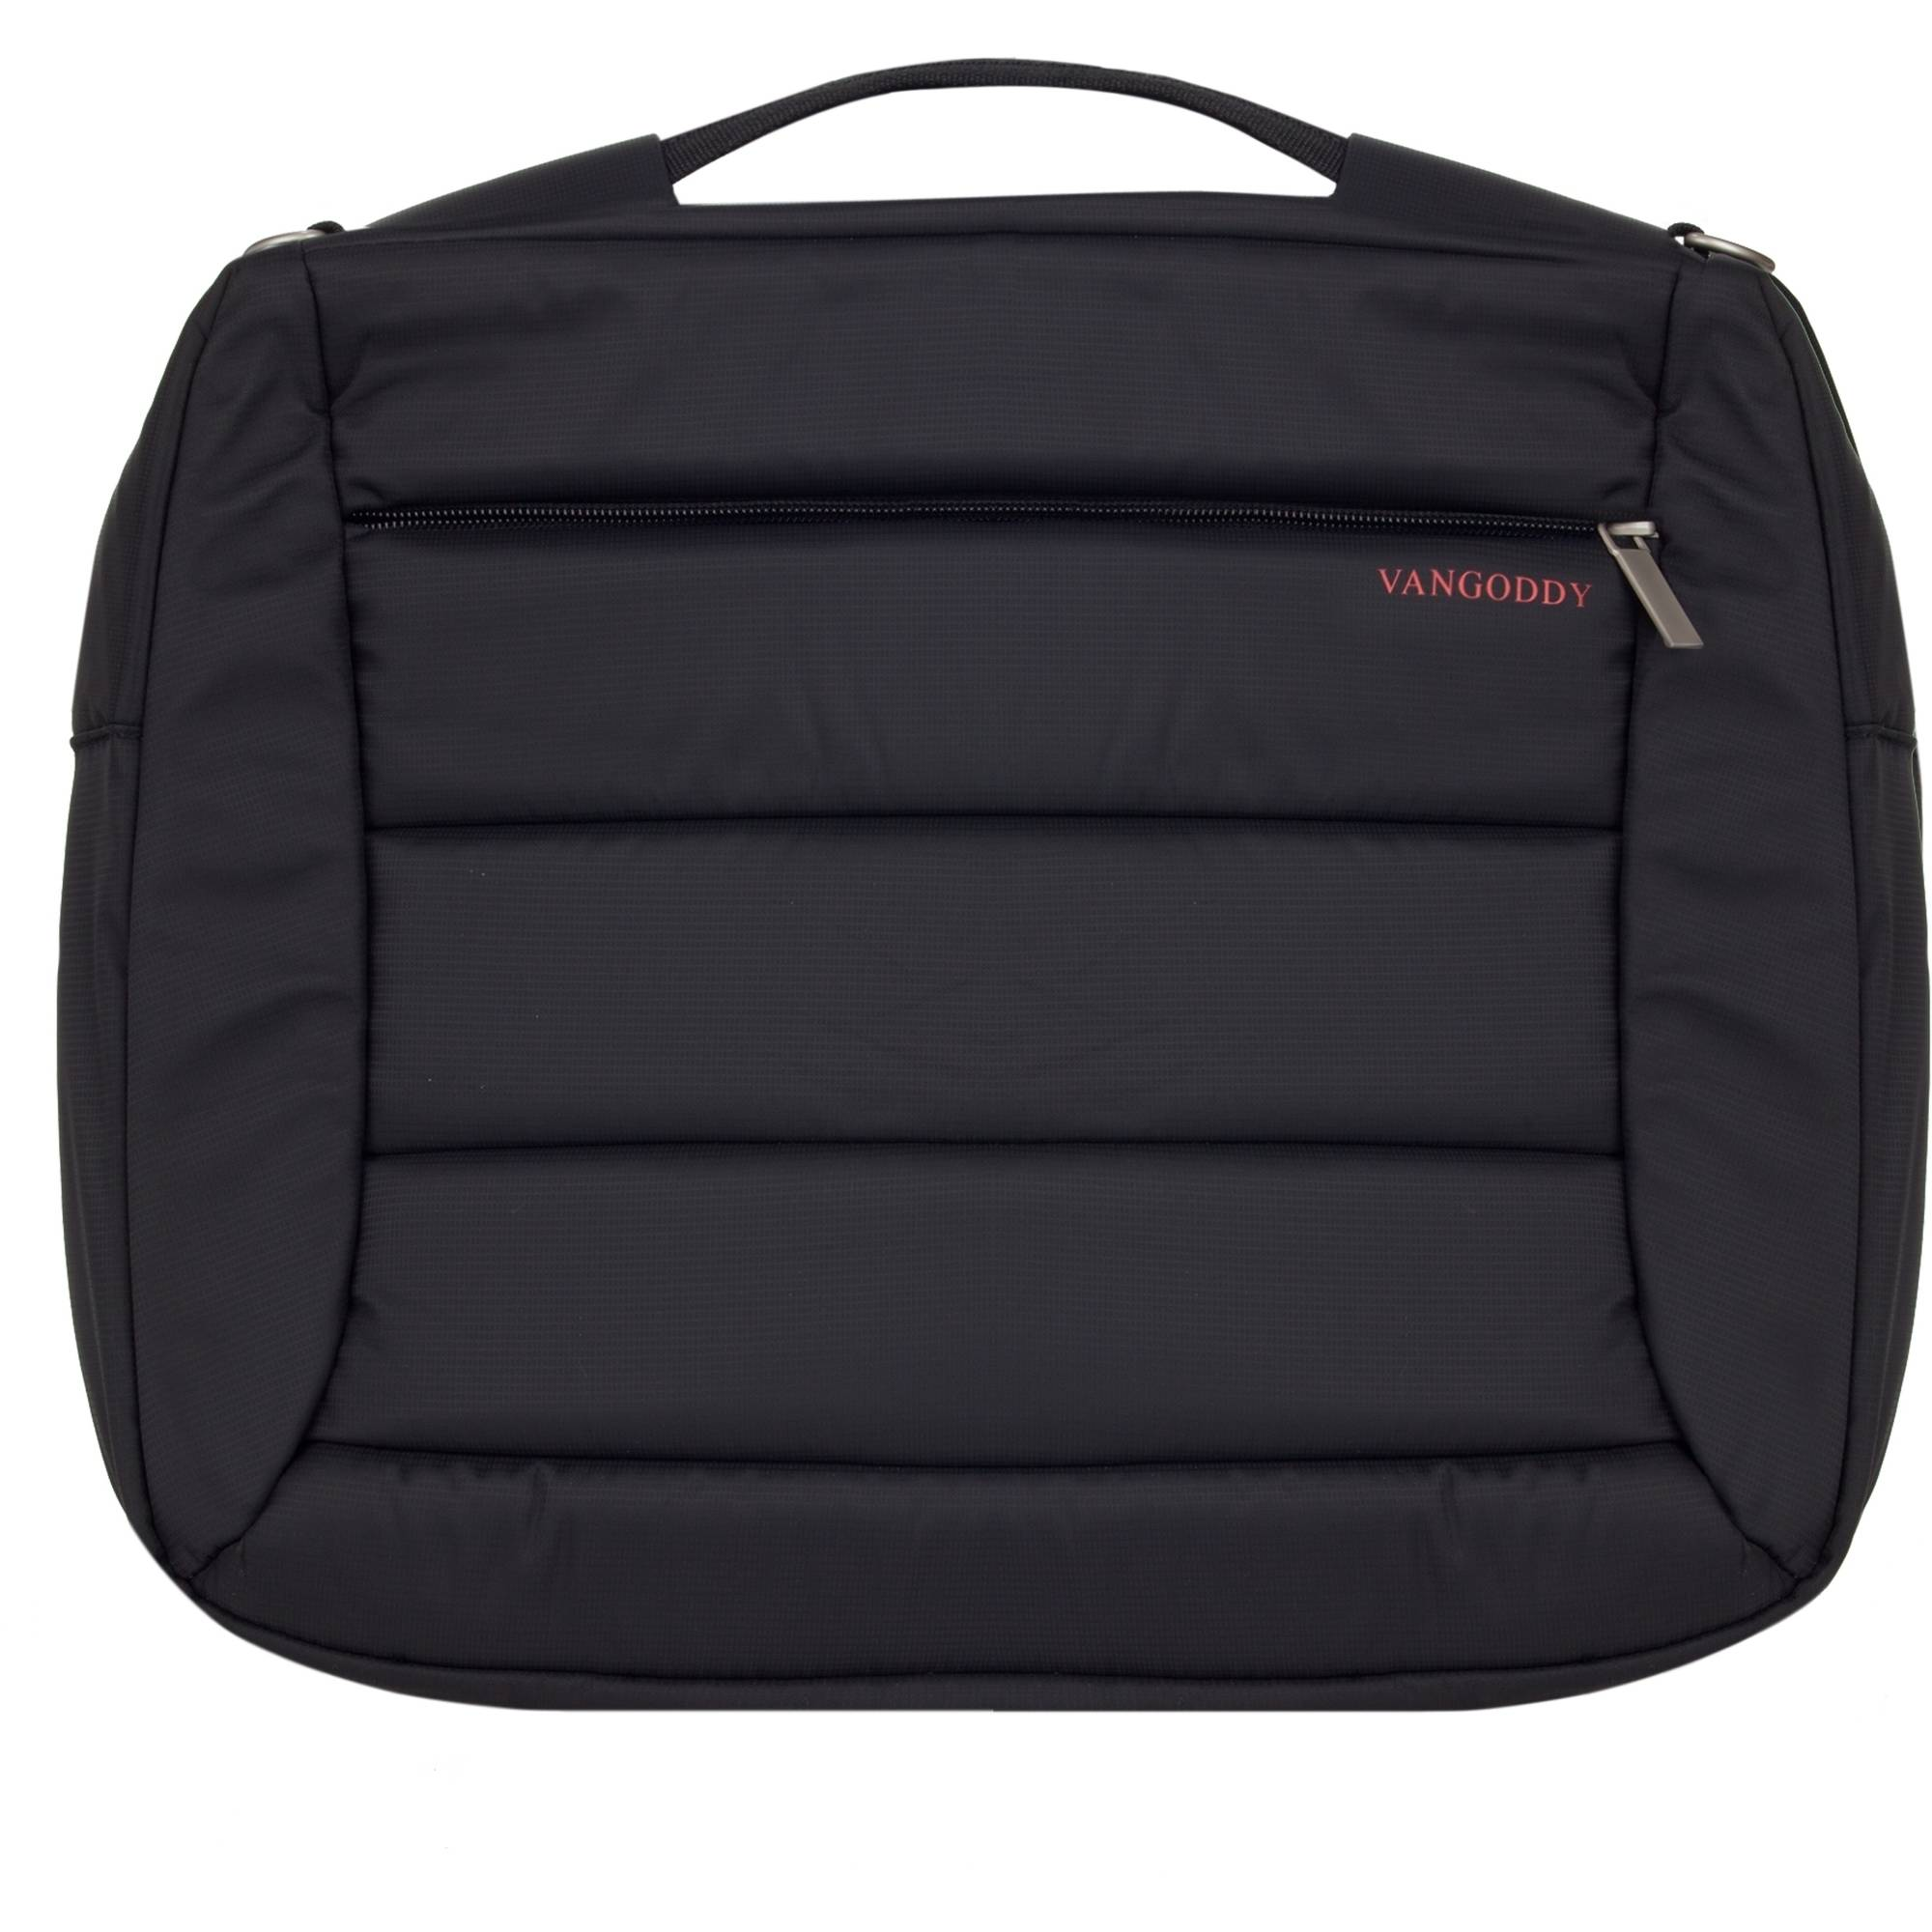 93d91122e442 VANGODDY Bonni Two in One Padded Laptop / Ultrabook Shoulder Bag Case  Backpack Hybrid fits up to 15, 15.6 inch laptops